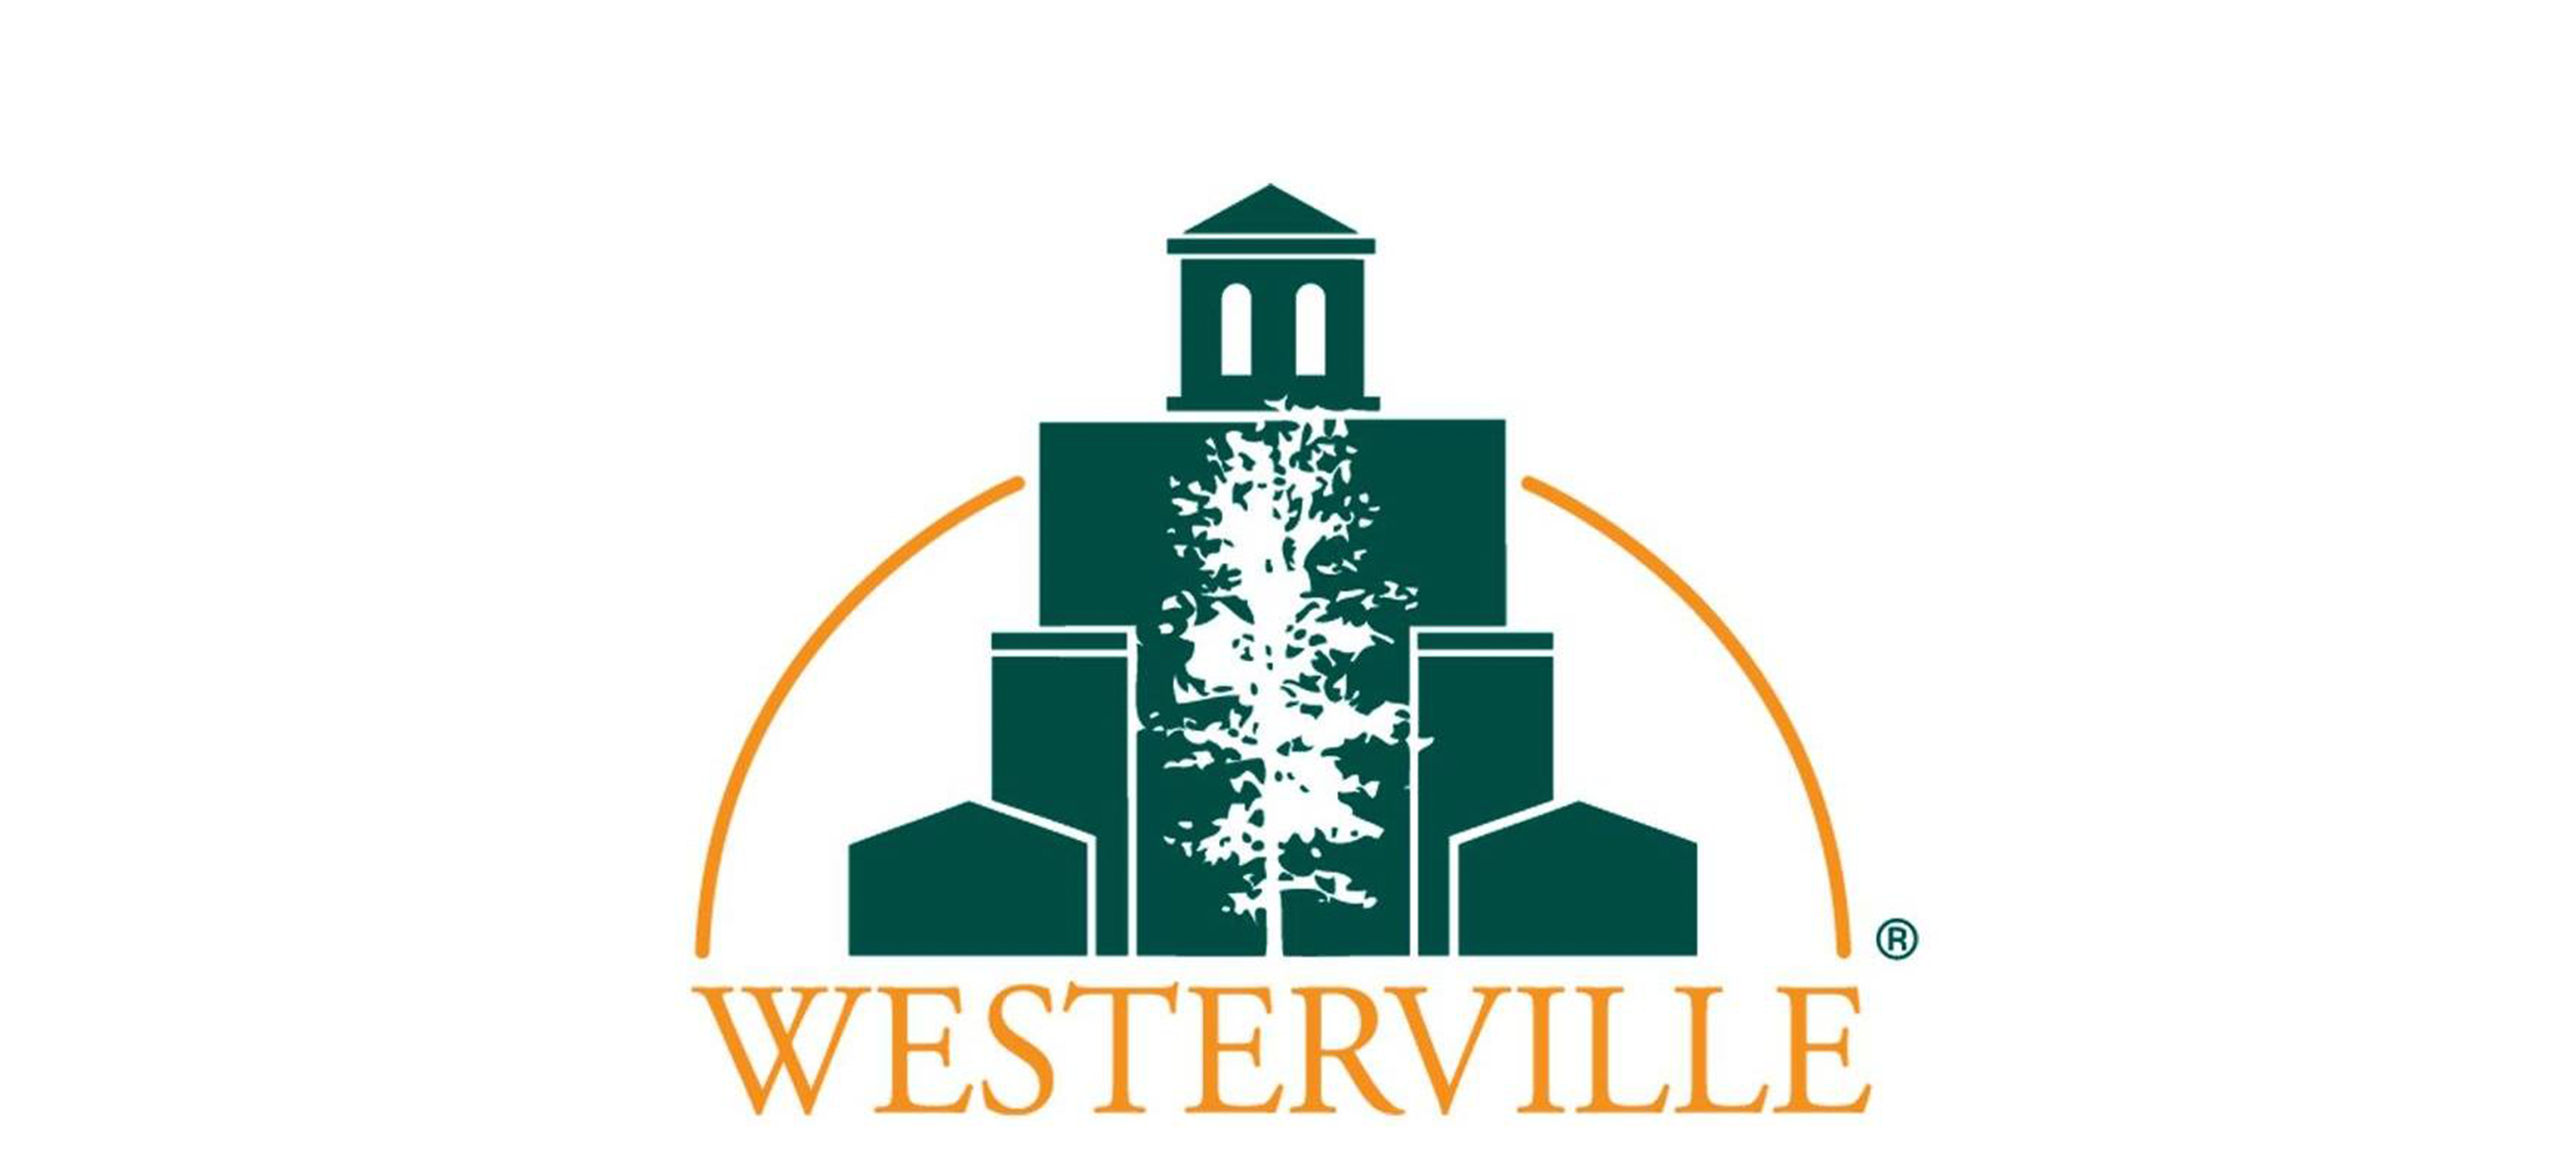 City of Westerville (Cover Image) (02)